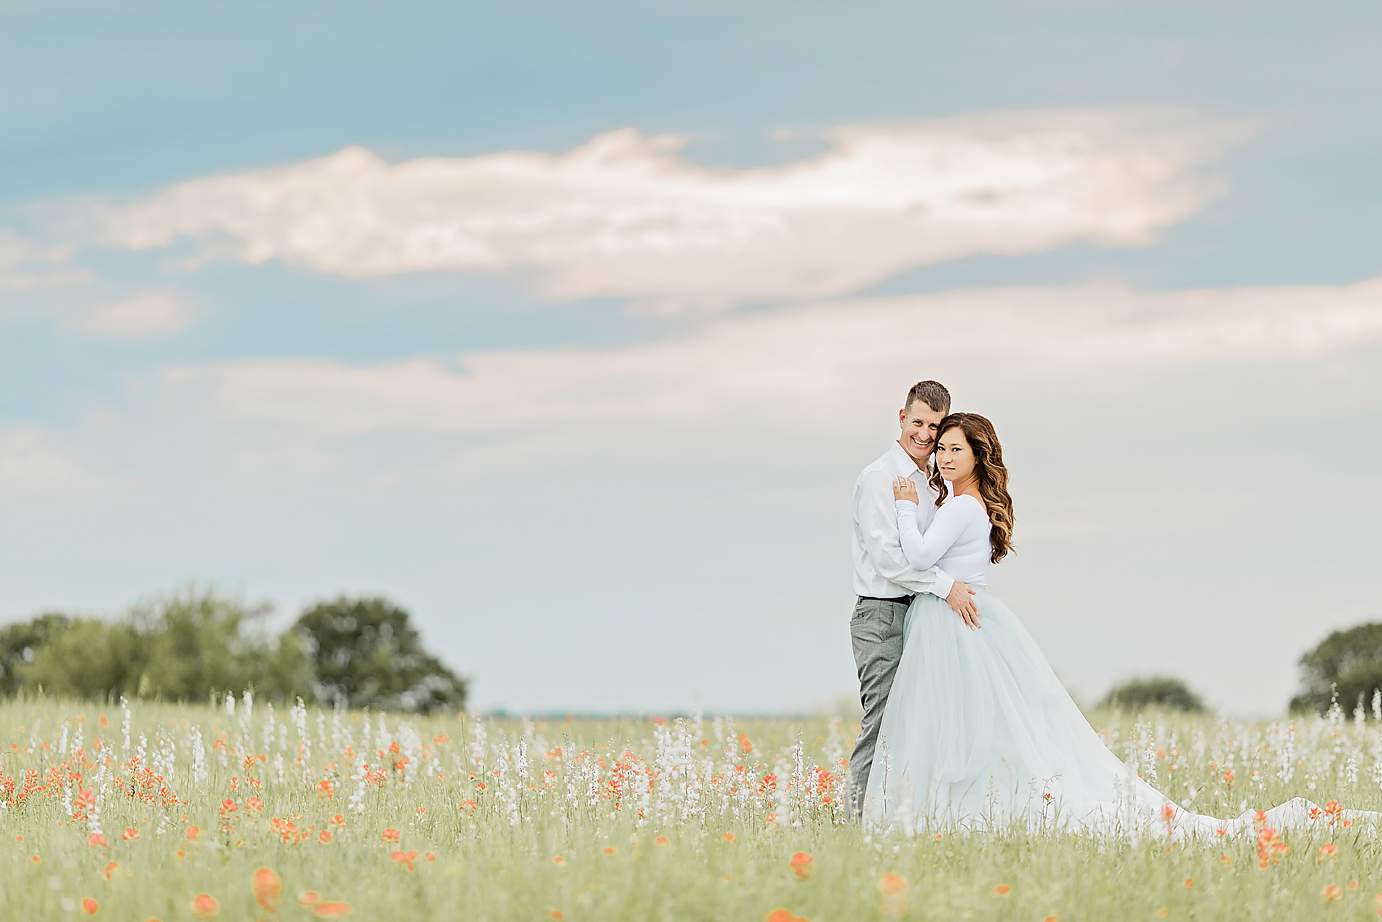 Dallas Wedding Photographer Flower Mound anniversary Photographer Kim Brett Texas Ranch Kate Marie Portraiture 1.png